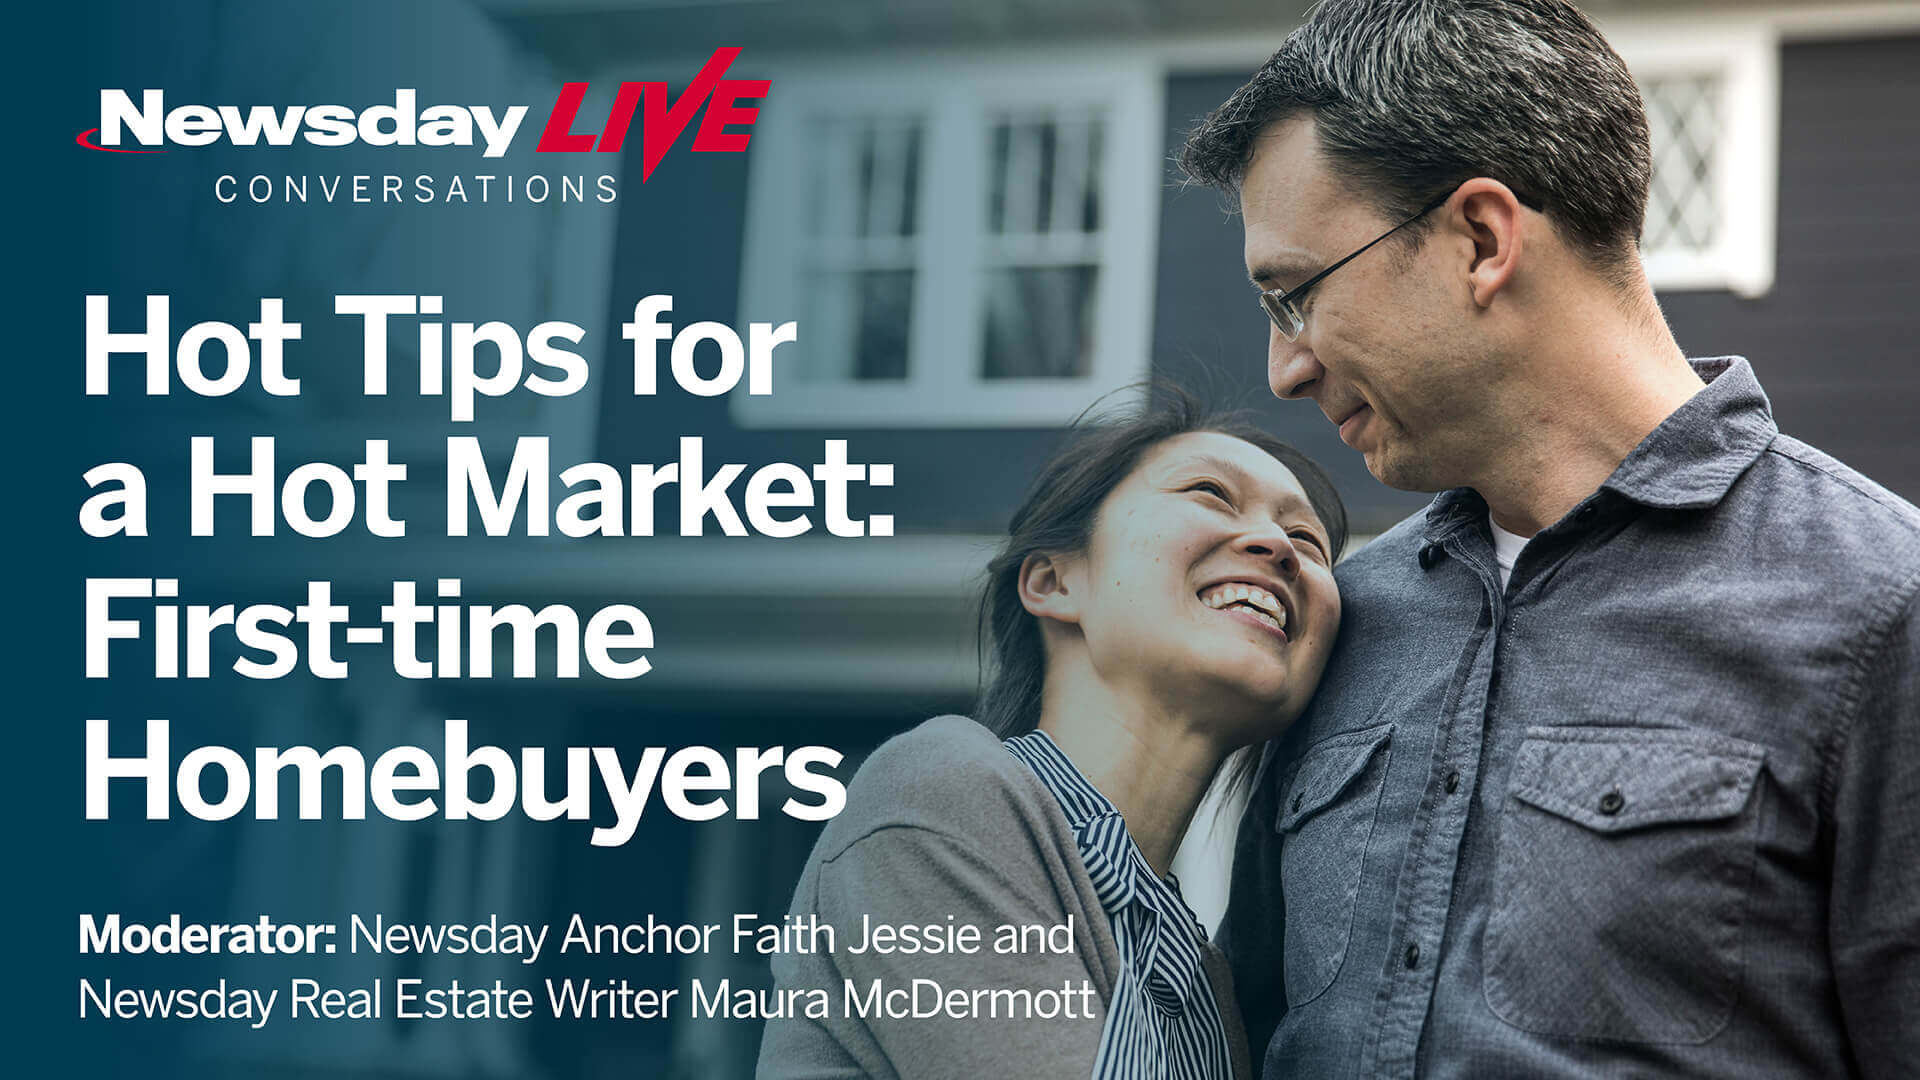 Hot Tips for a Hot Market: First-time Homebuyers